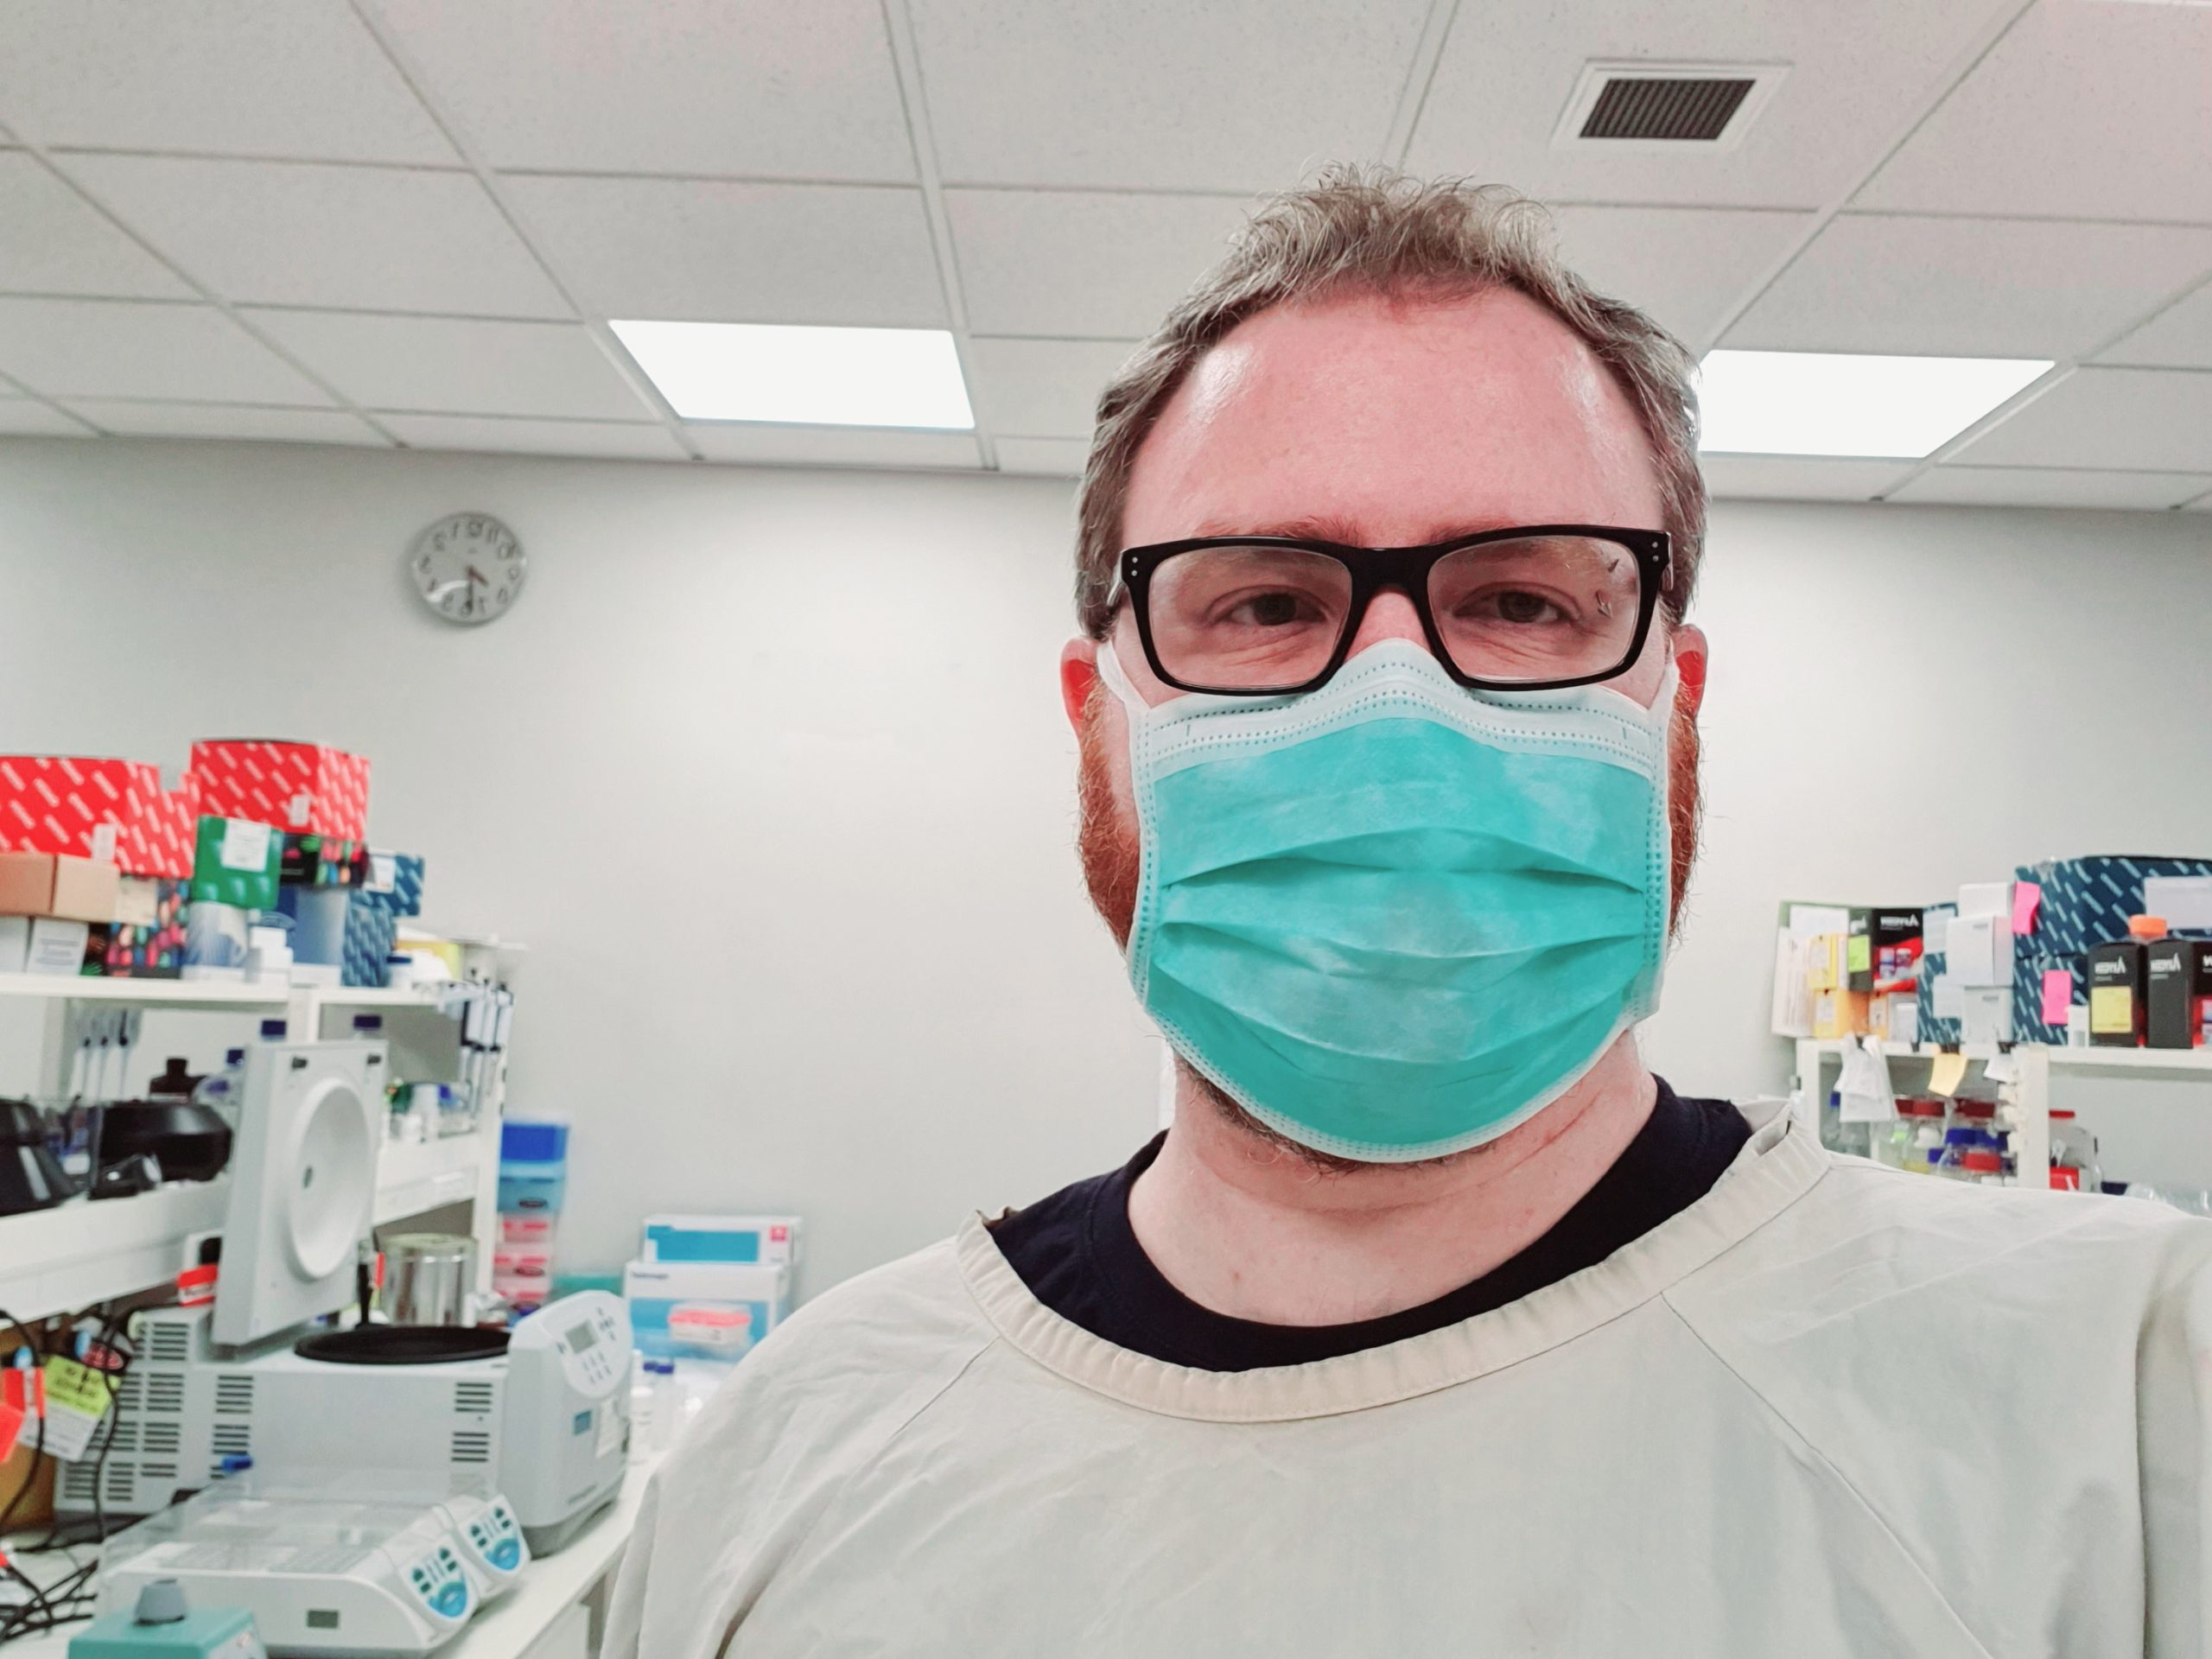 A man in a surgical mask and lab gear.